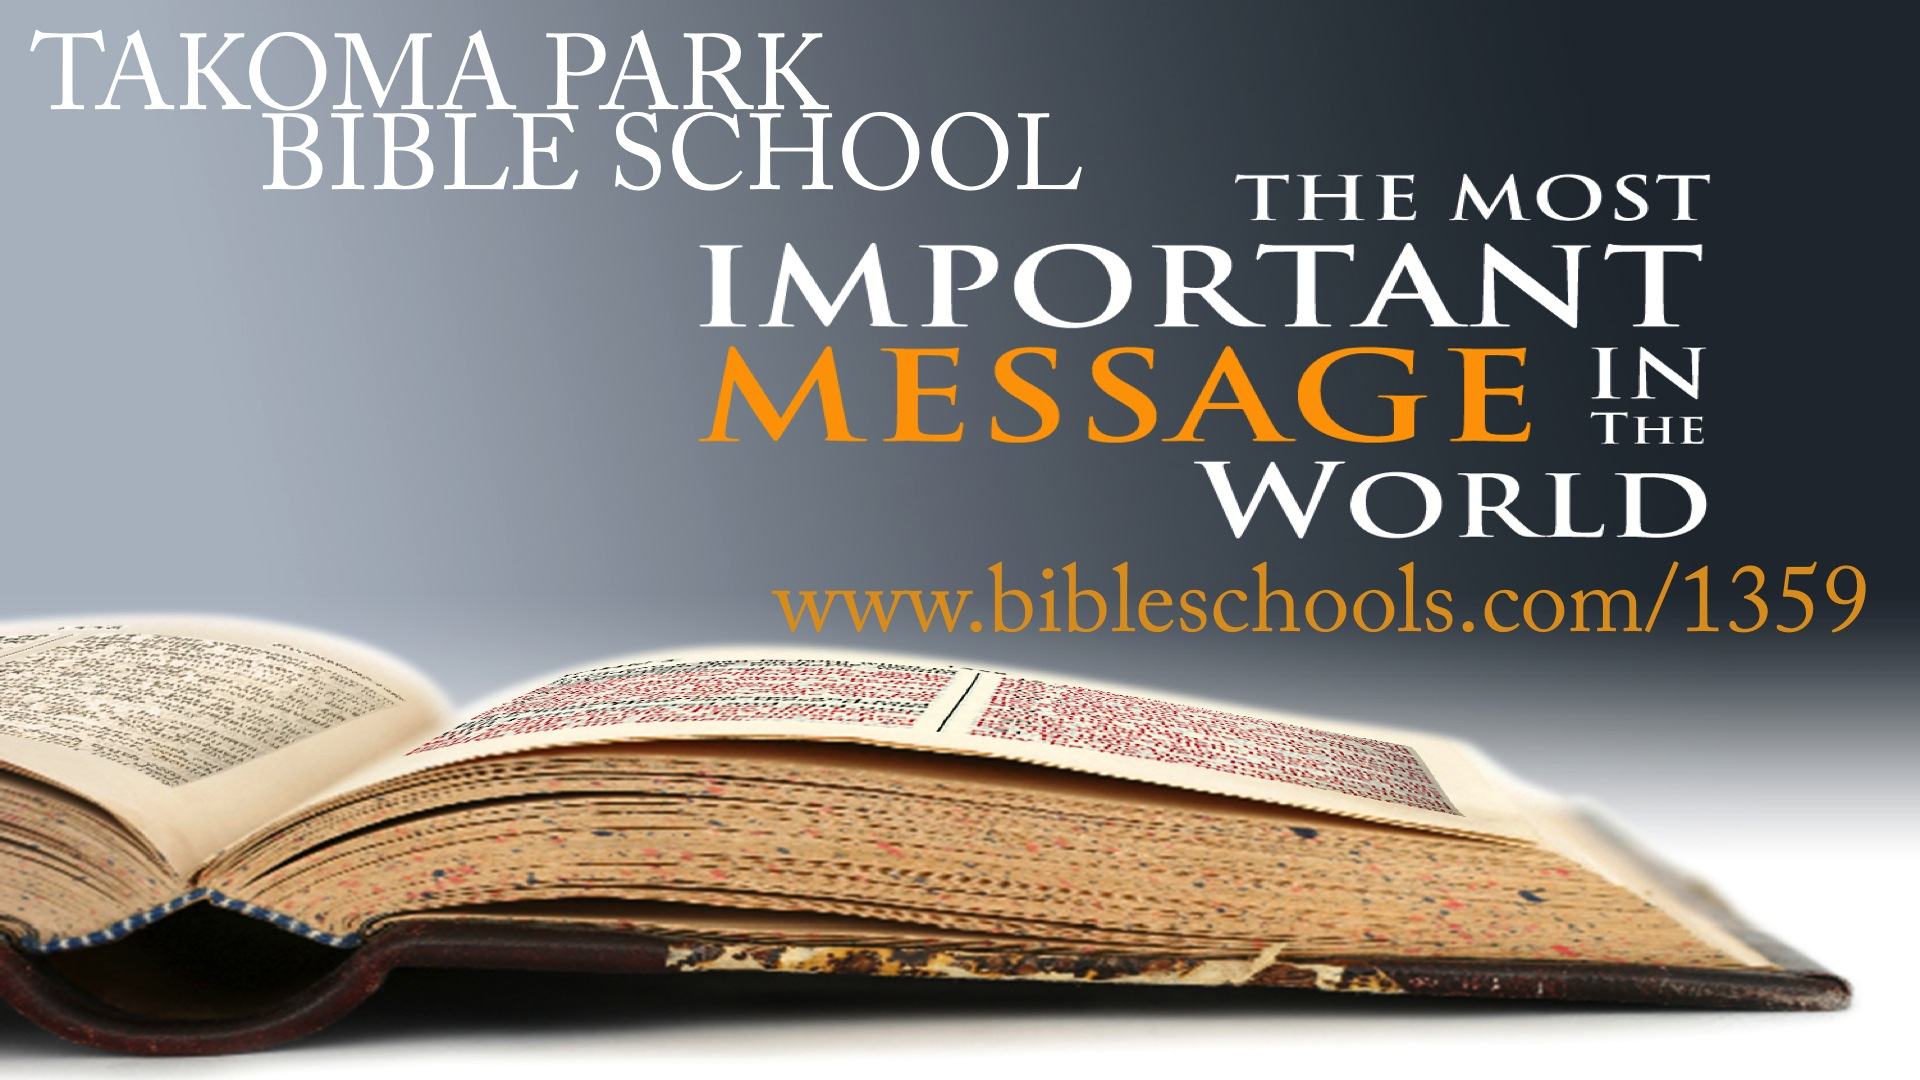 Takoma Park Bible School